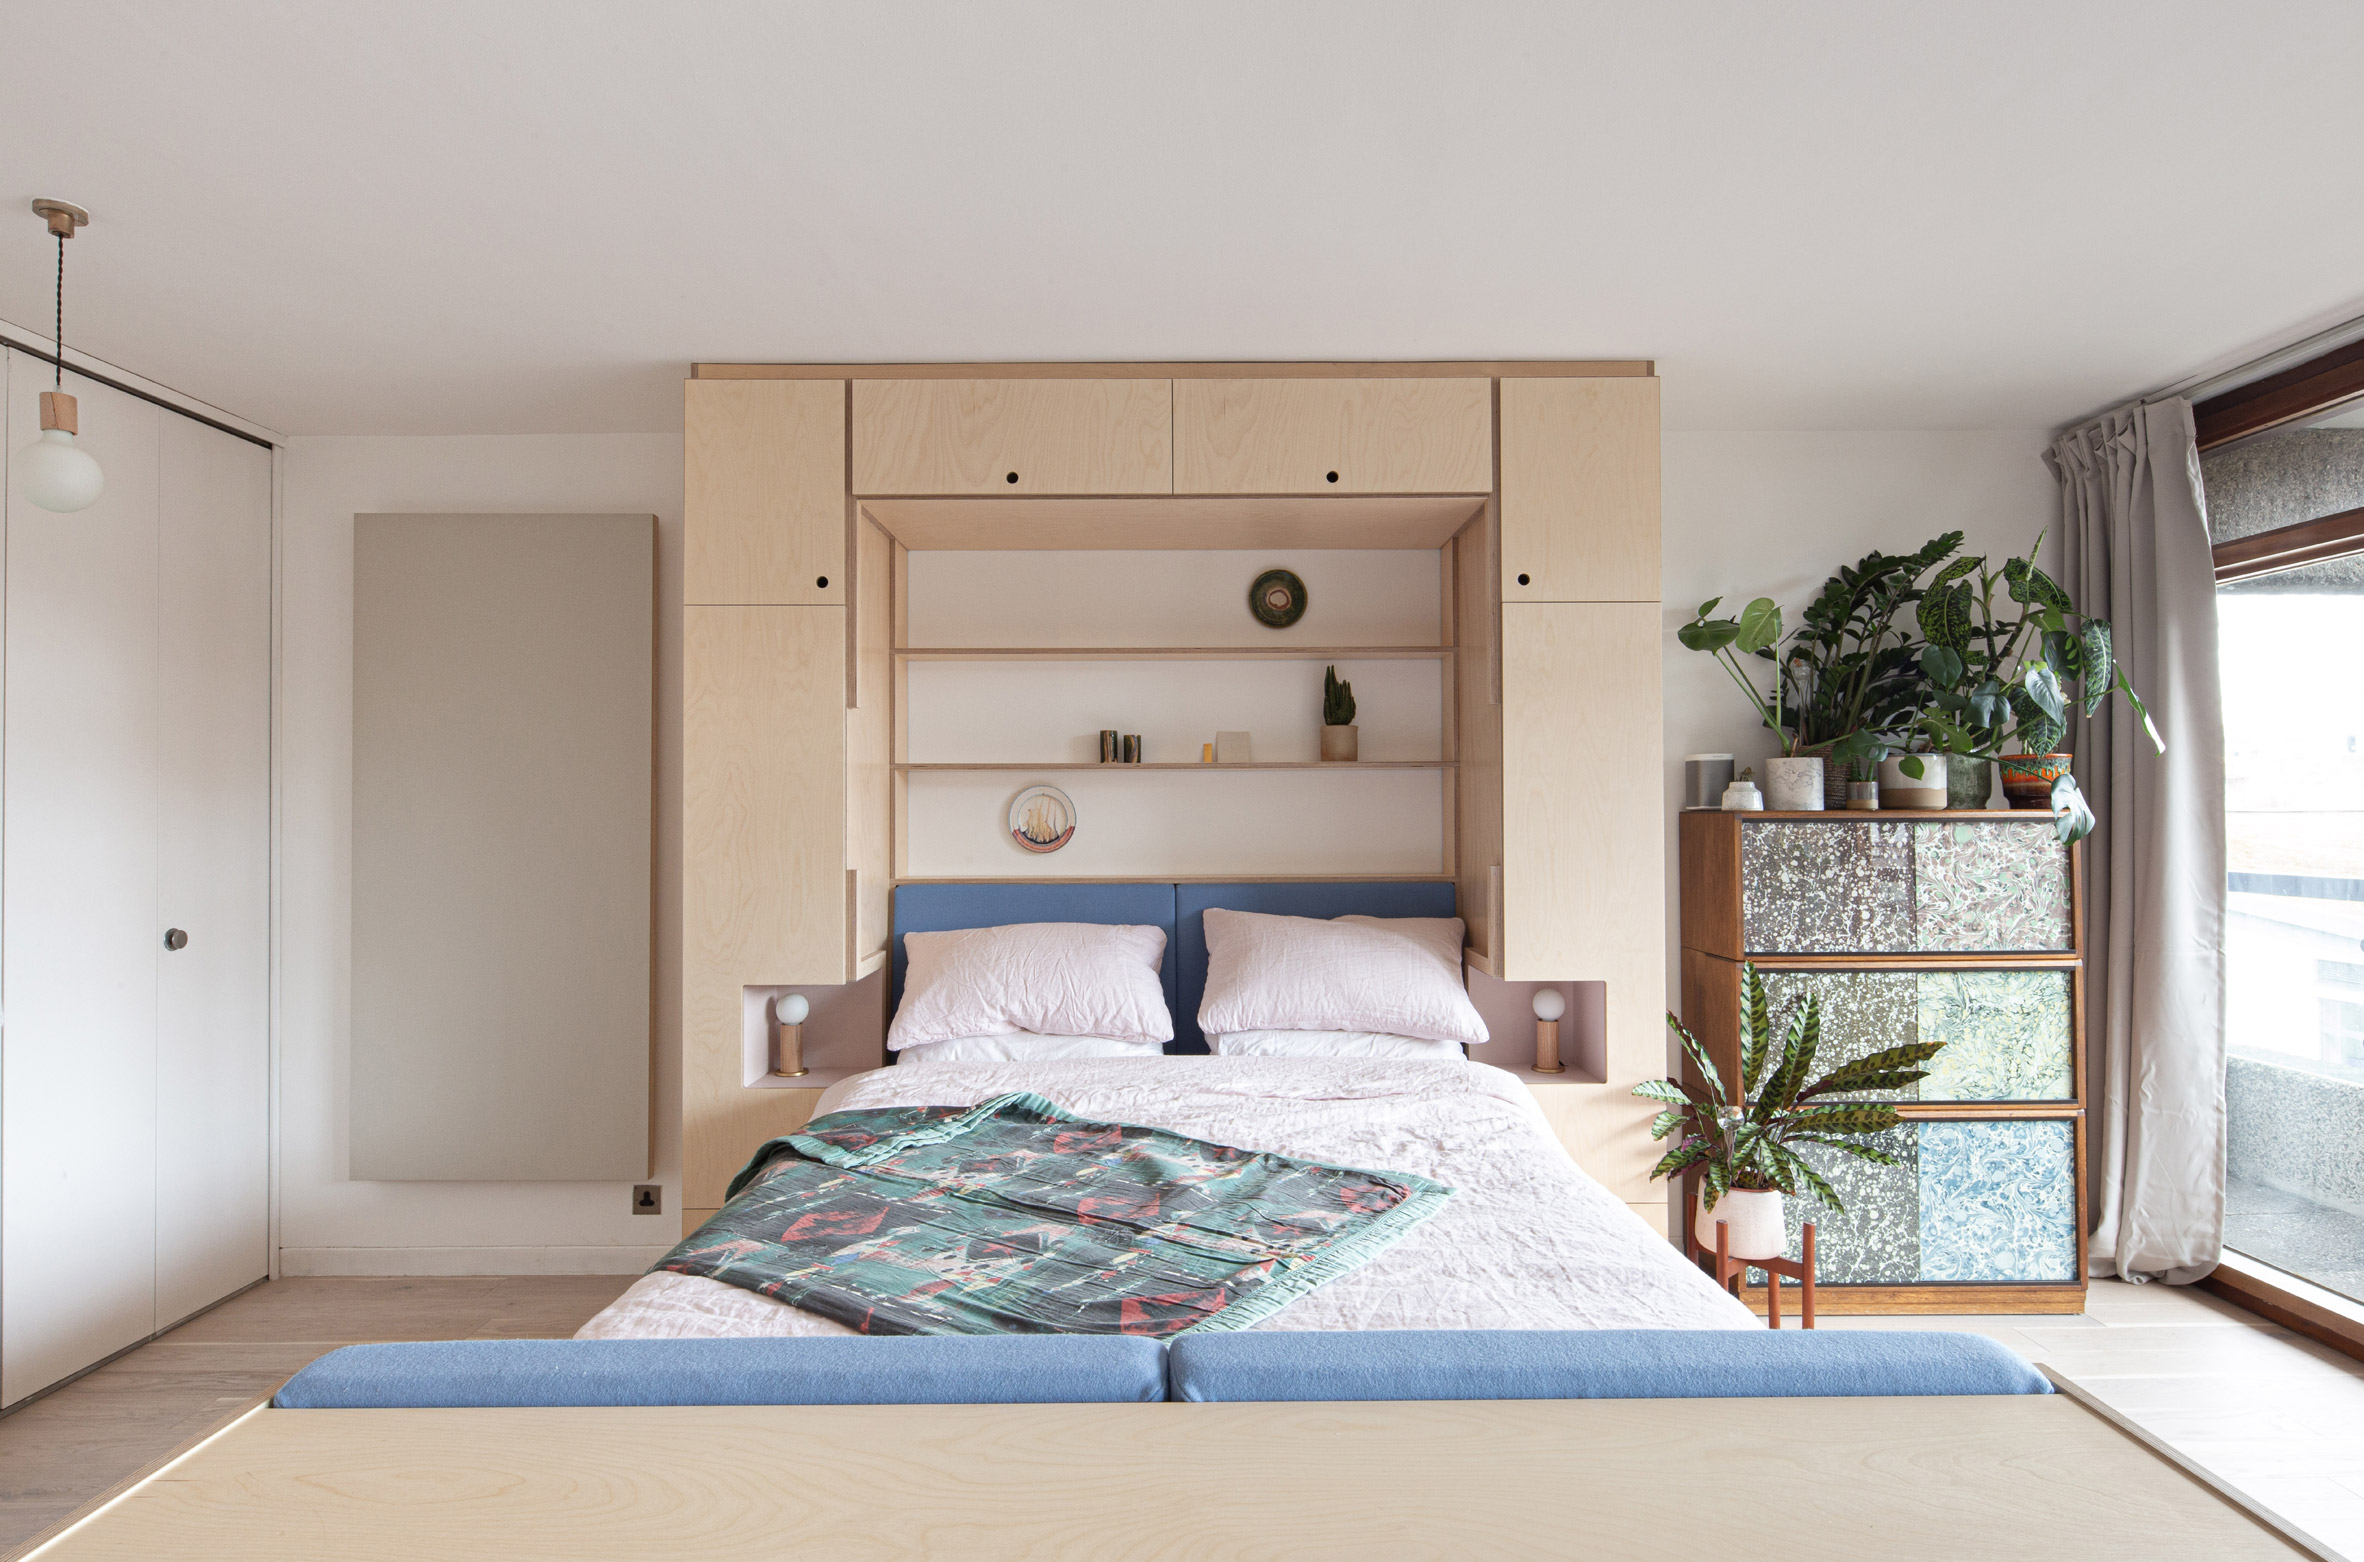 Barbican Dancer's Studio by Intervention Architecture bed